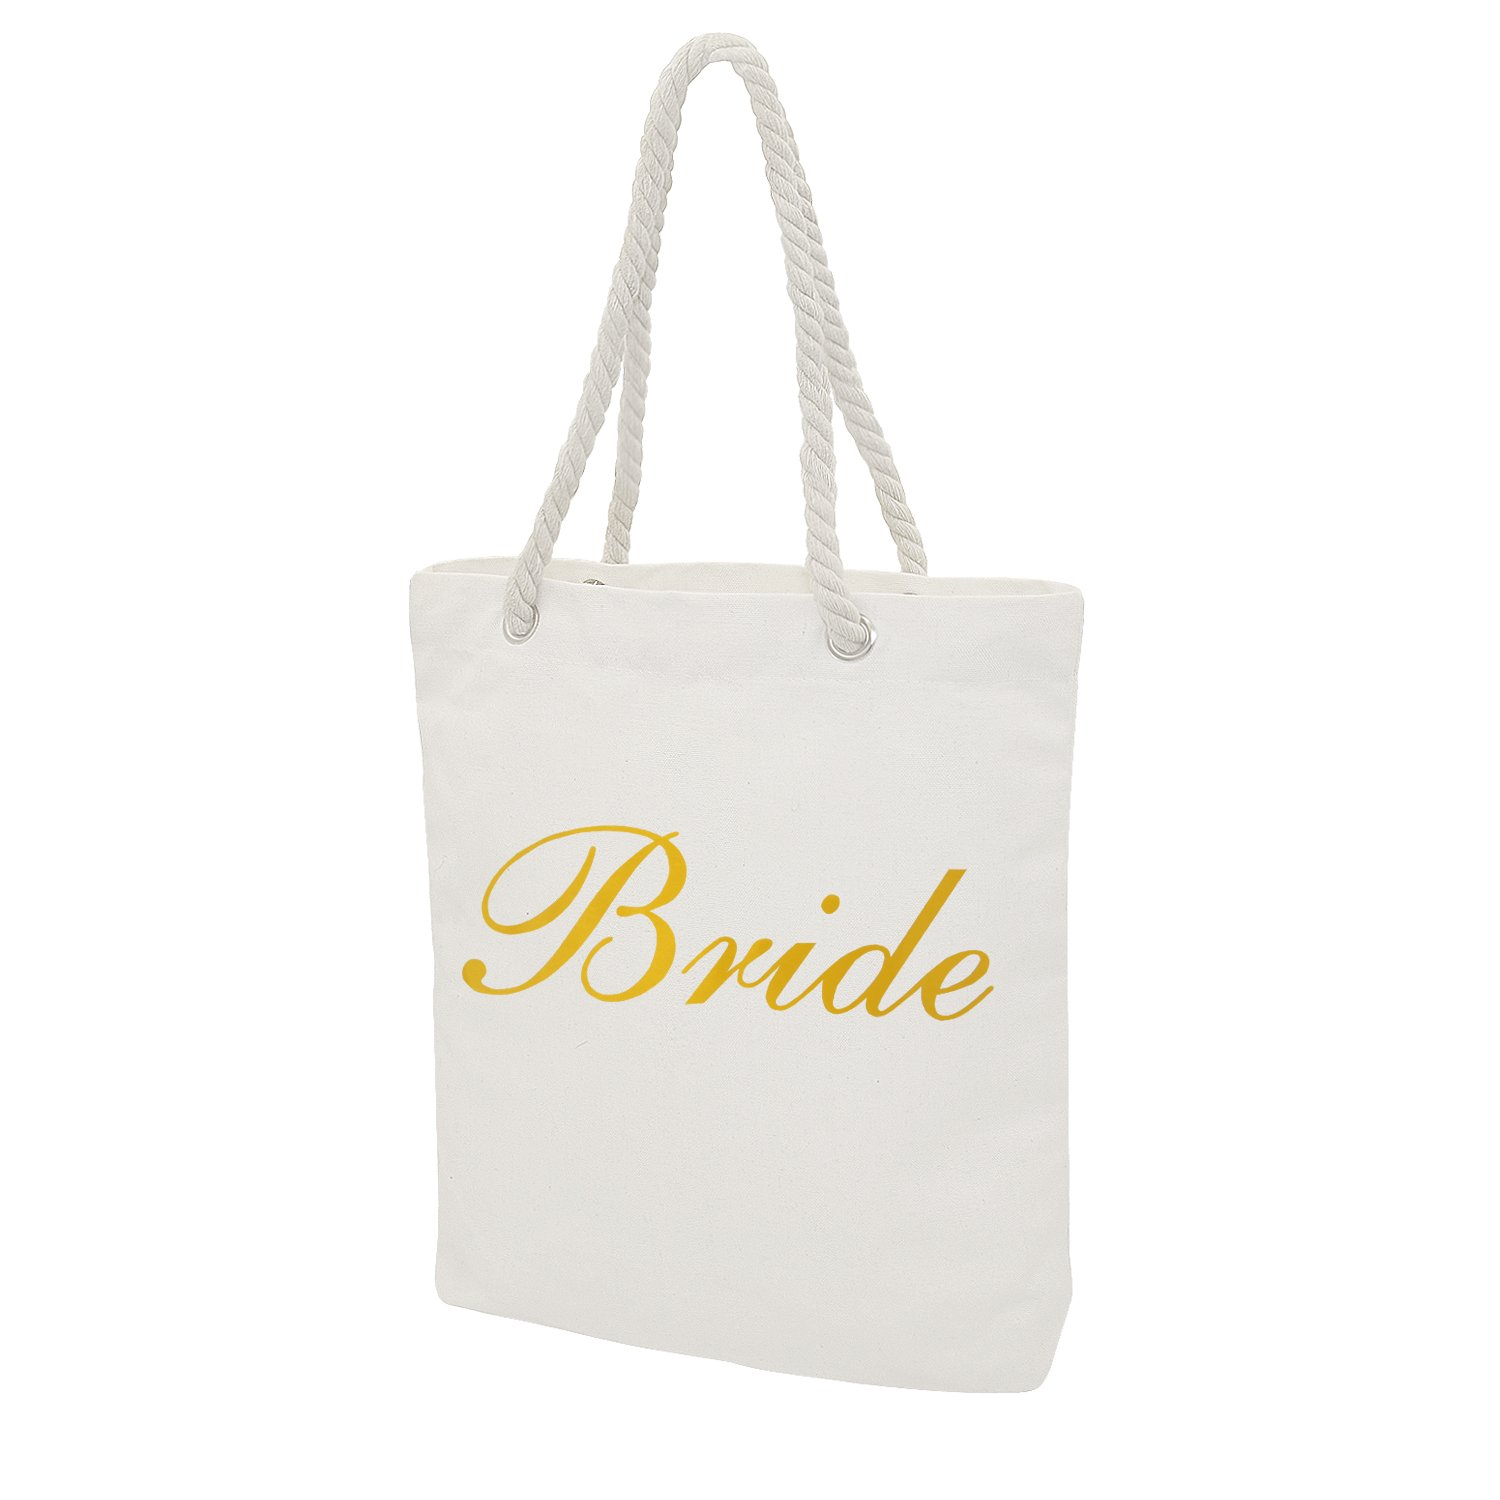 Personalised Tote Bag Wedding Favor Bride Bridesmaid Maid of Honor Hen Gift Bridal Shower